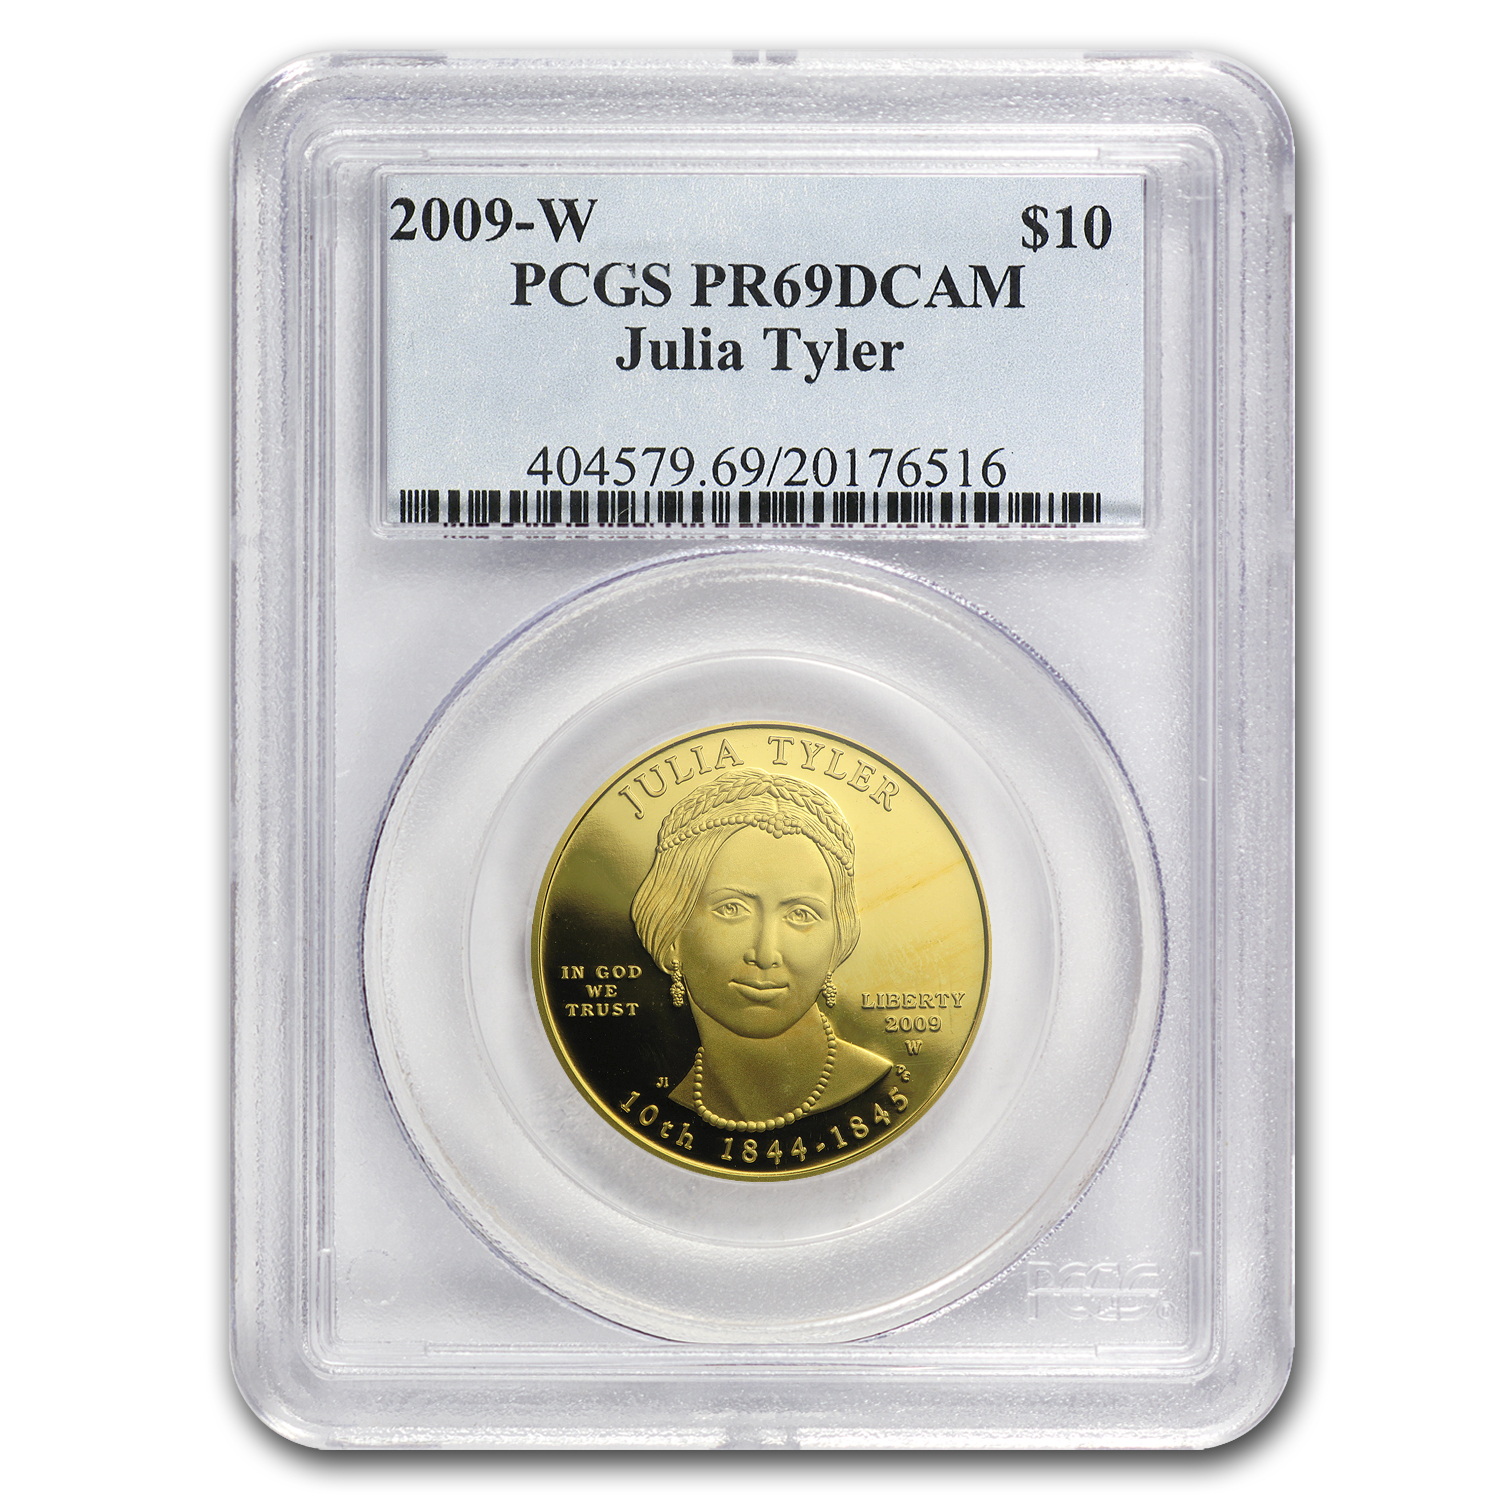 2009-W 1/2 oz Proof Gold Julia Tyler PR-69 PCGS